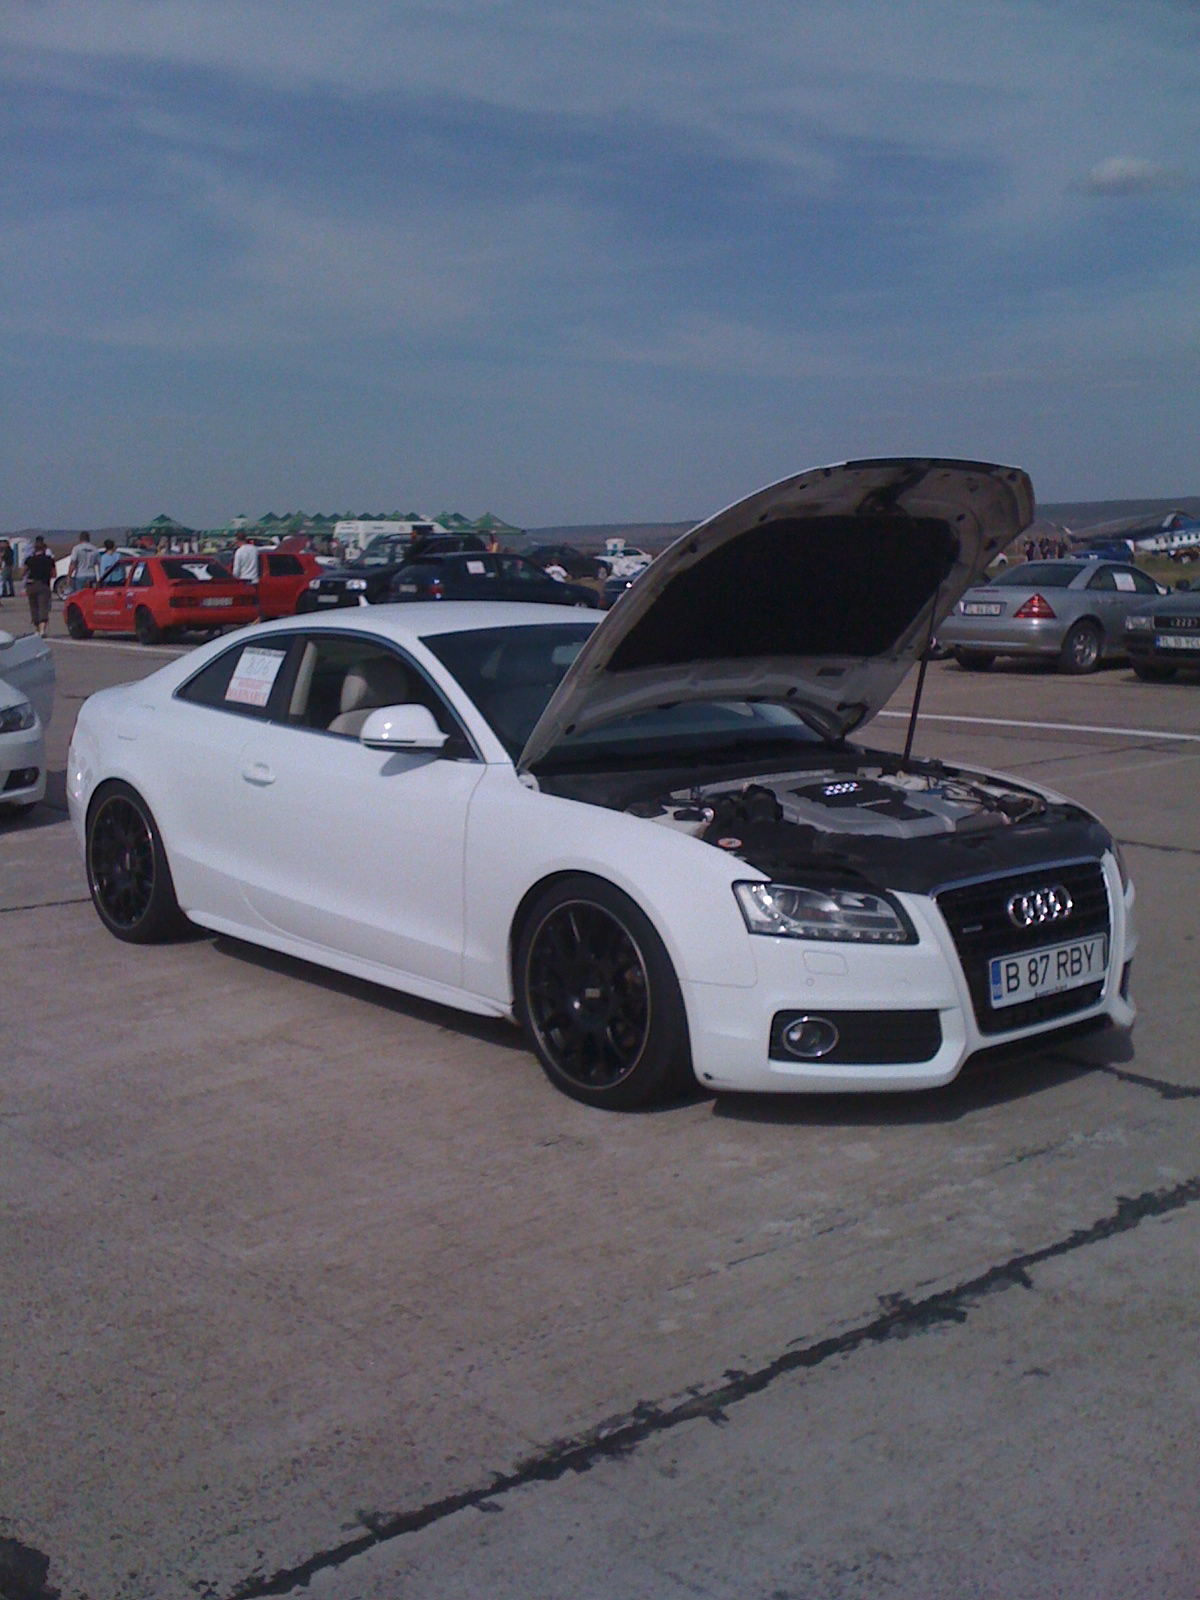 2008 Audi A5 Pictures, Mods, Upgrades, Wallpaper - DragTimes.com